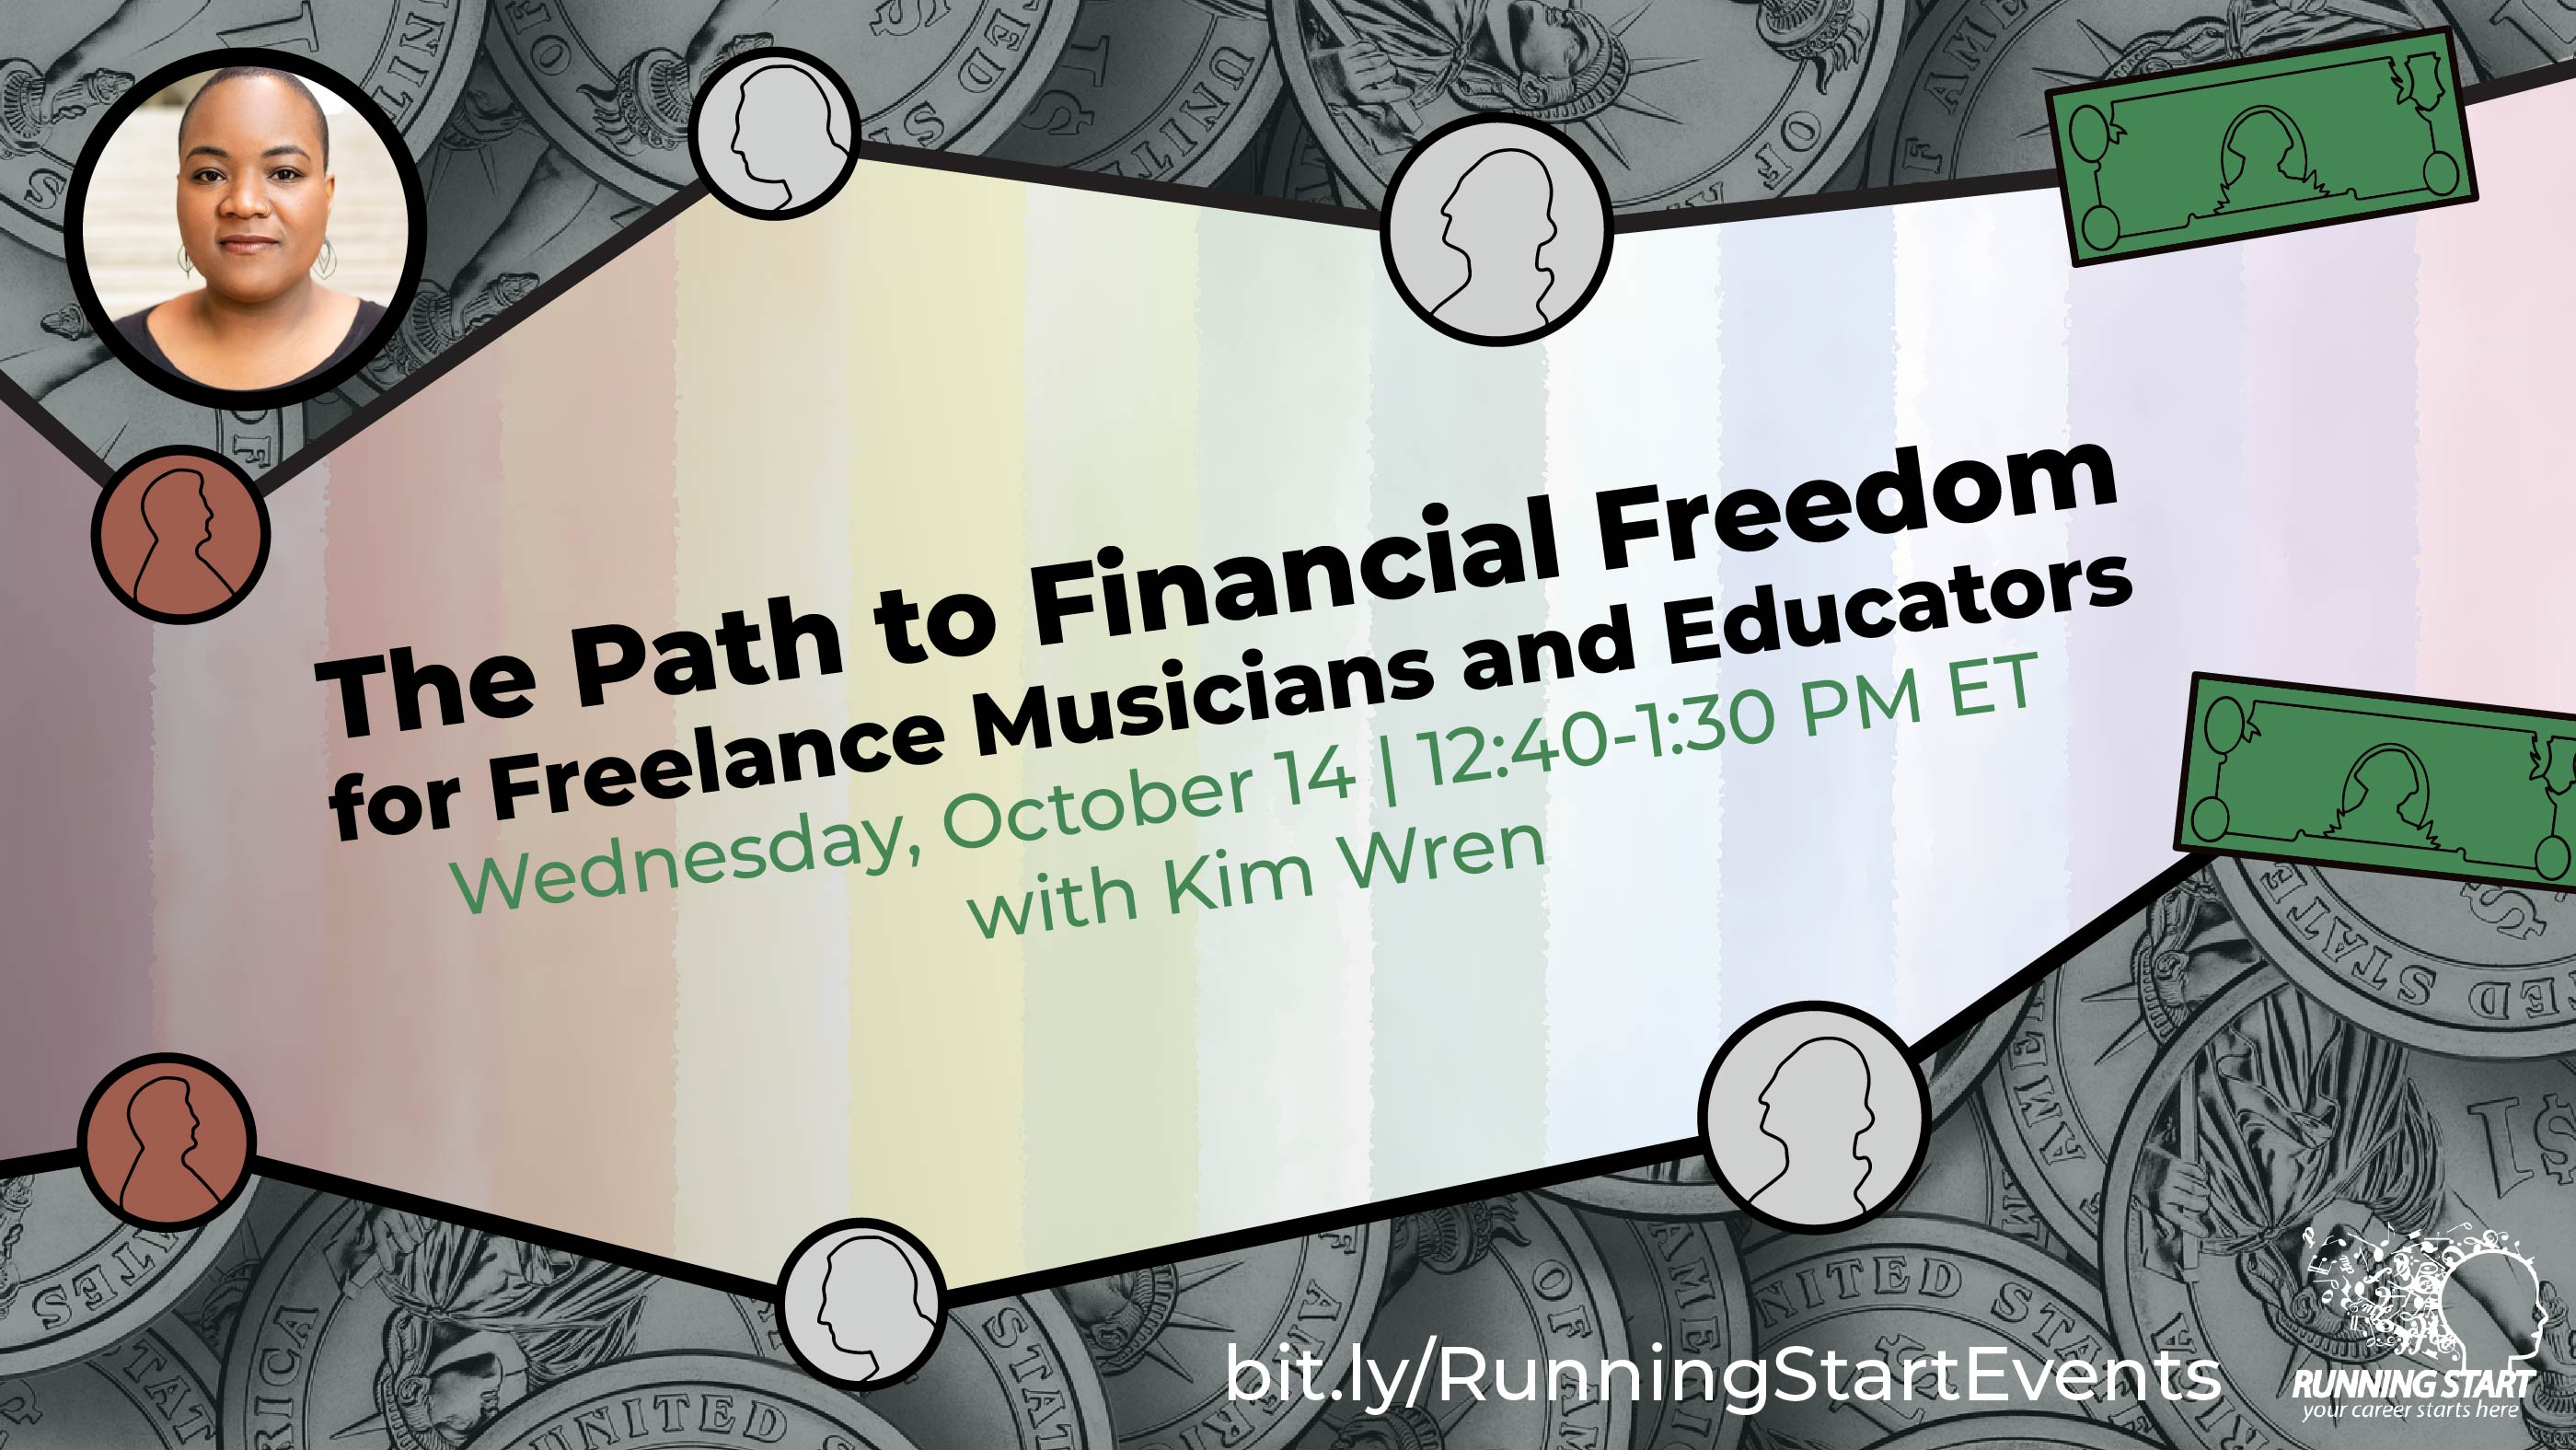 The Path to Financial Freedom image